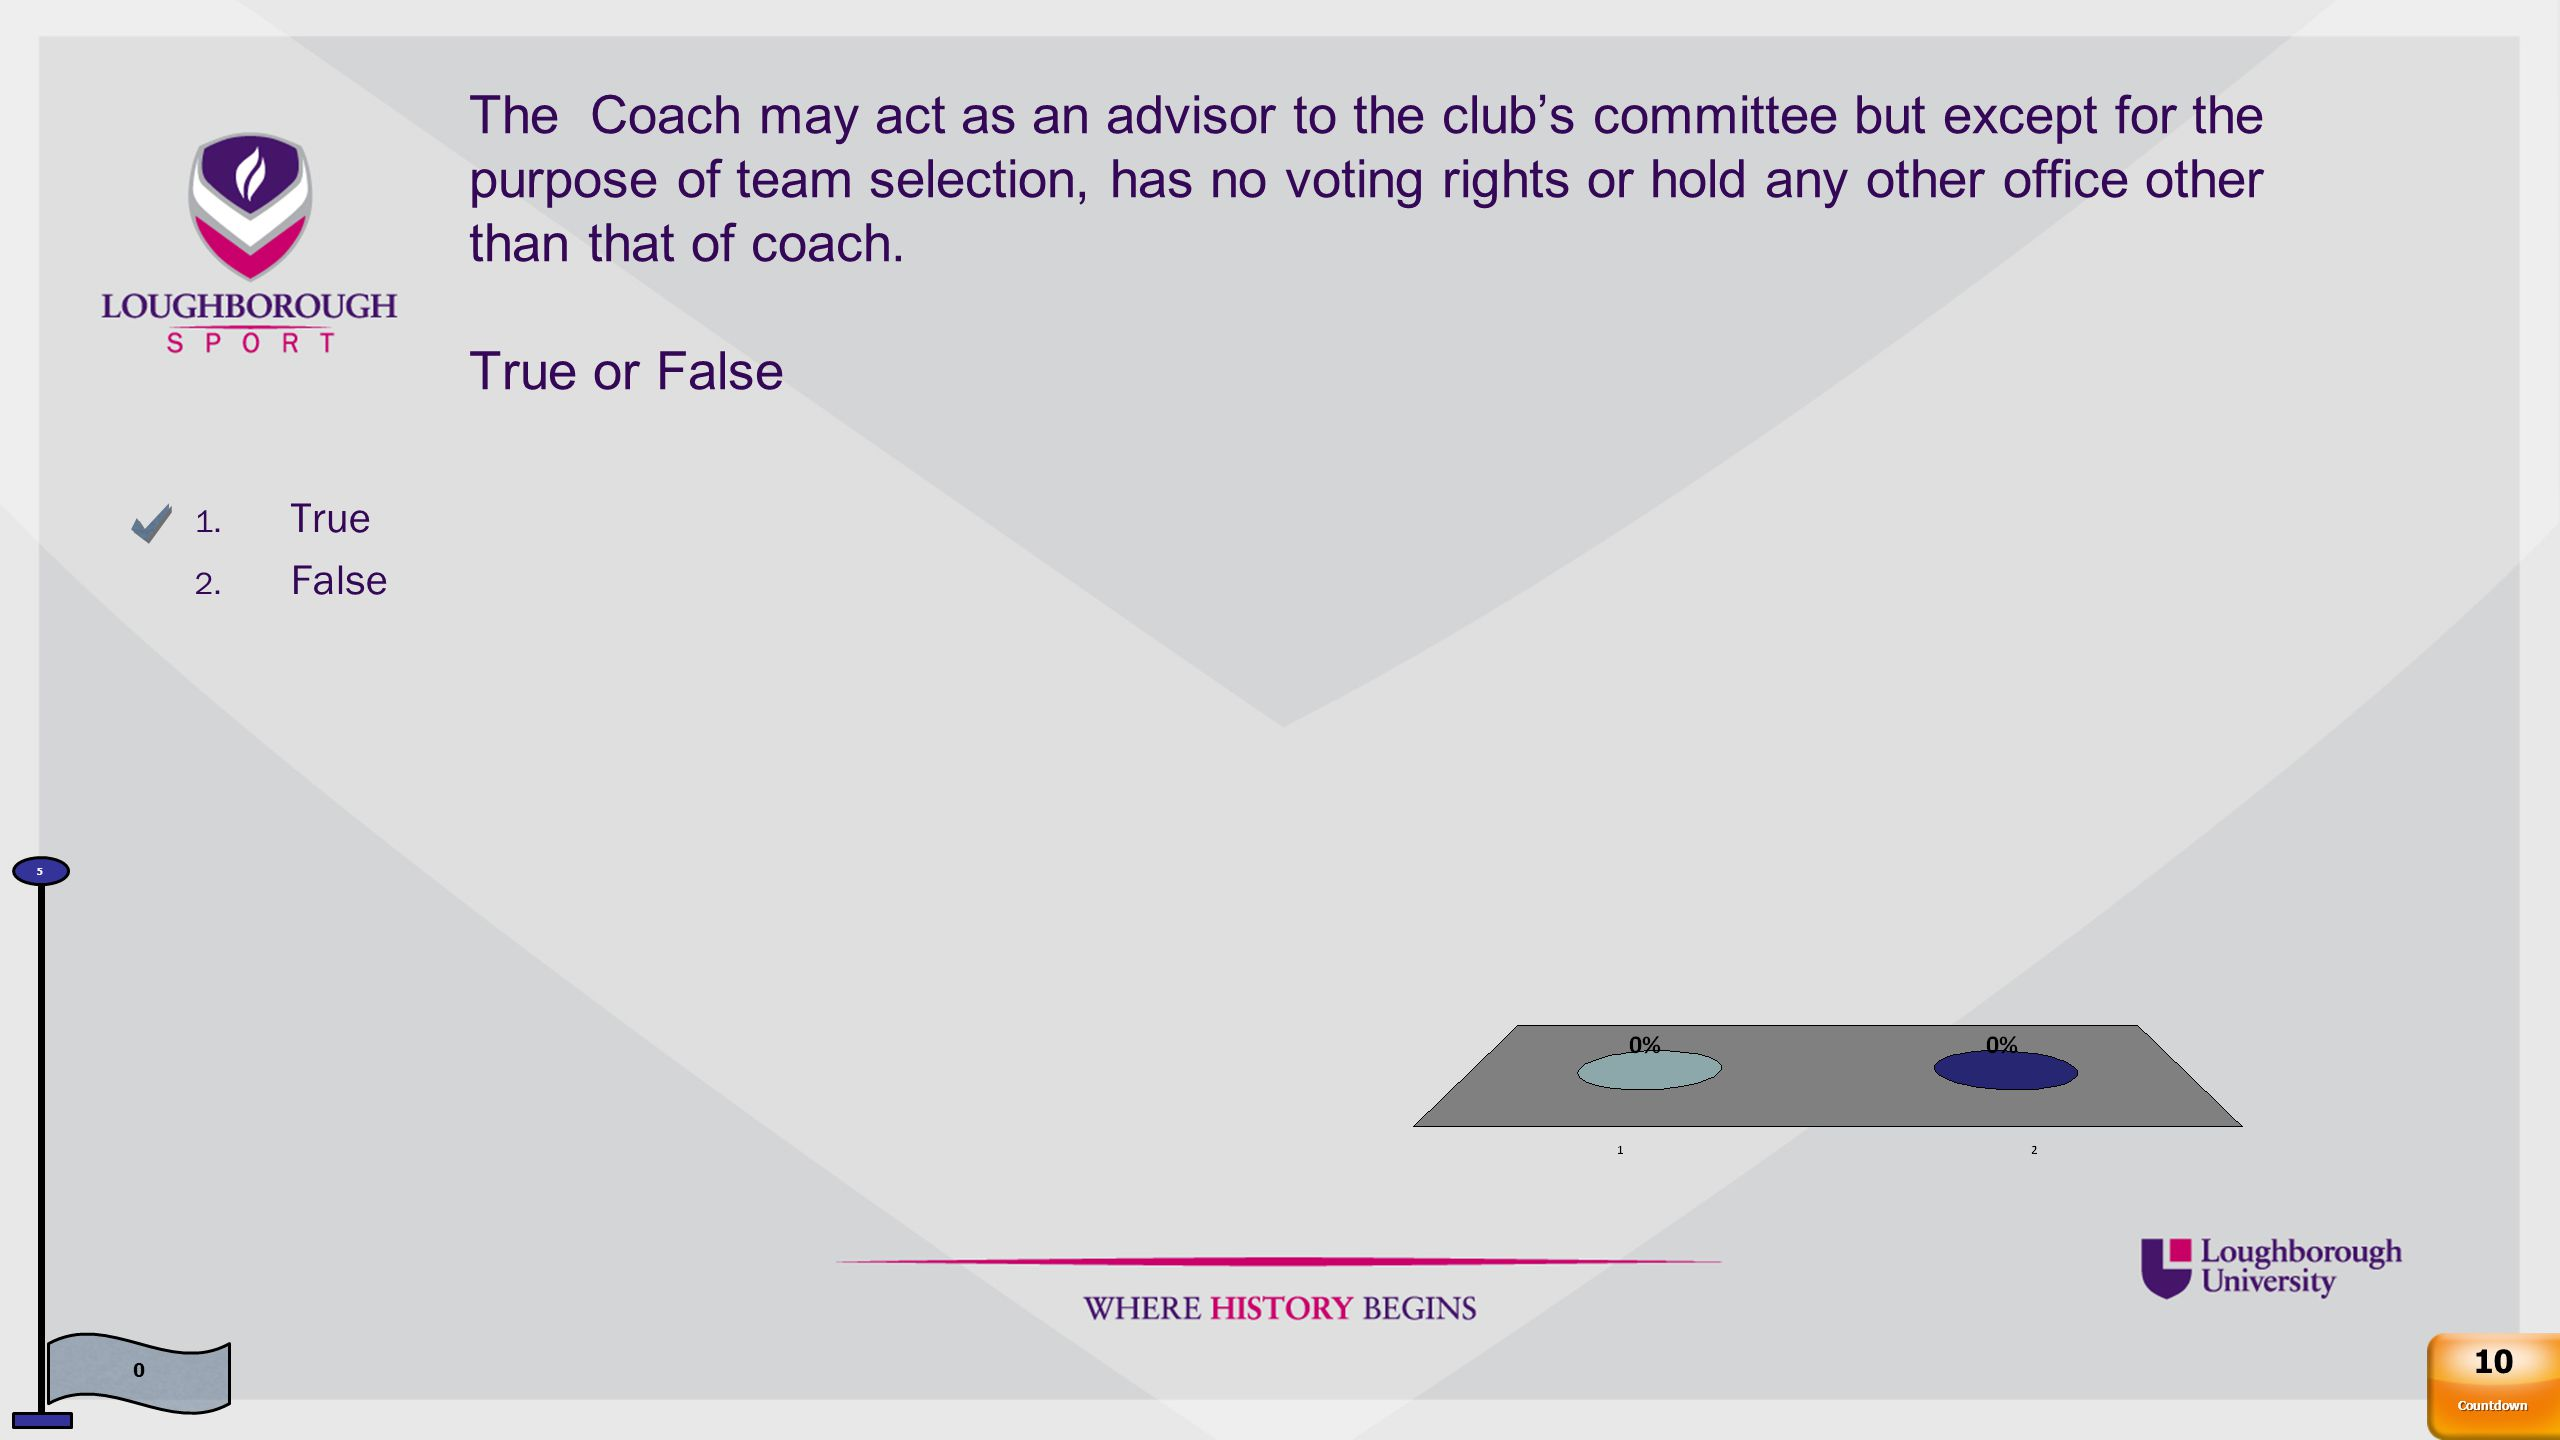 The Coach may act as an advisor to the club's committee but except for the purpose of team selection, has no voting rights or hold any other office other than that of coach.